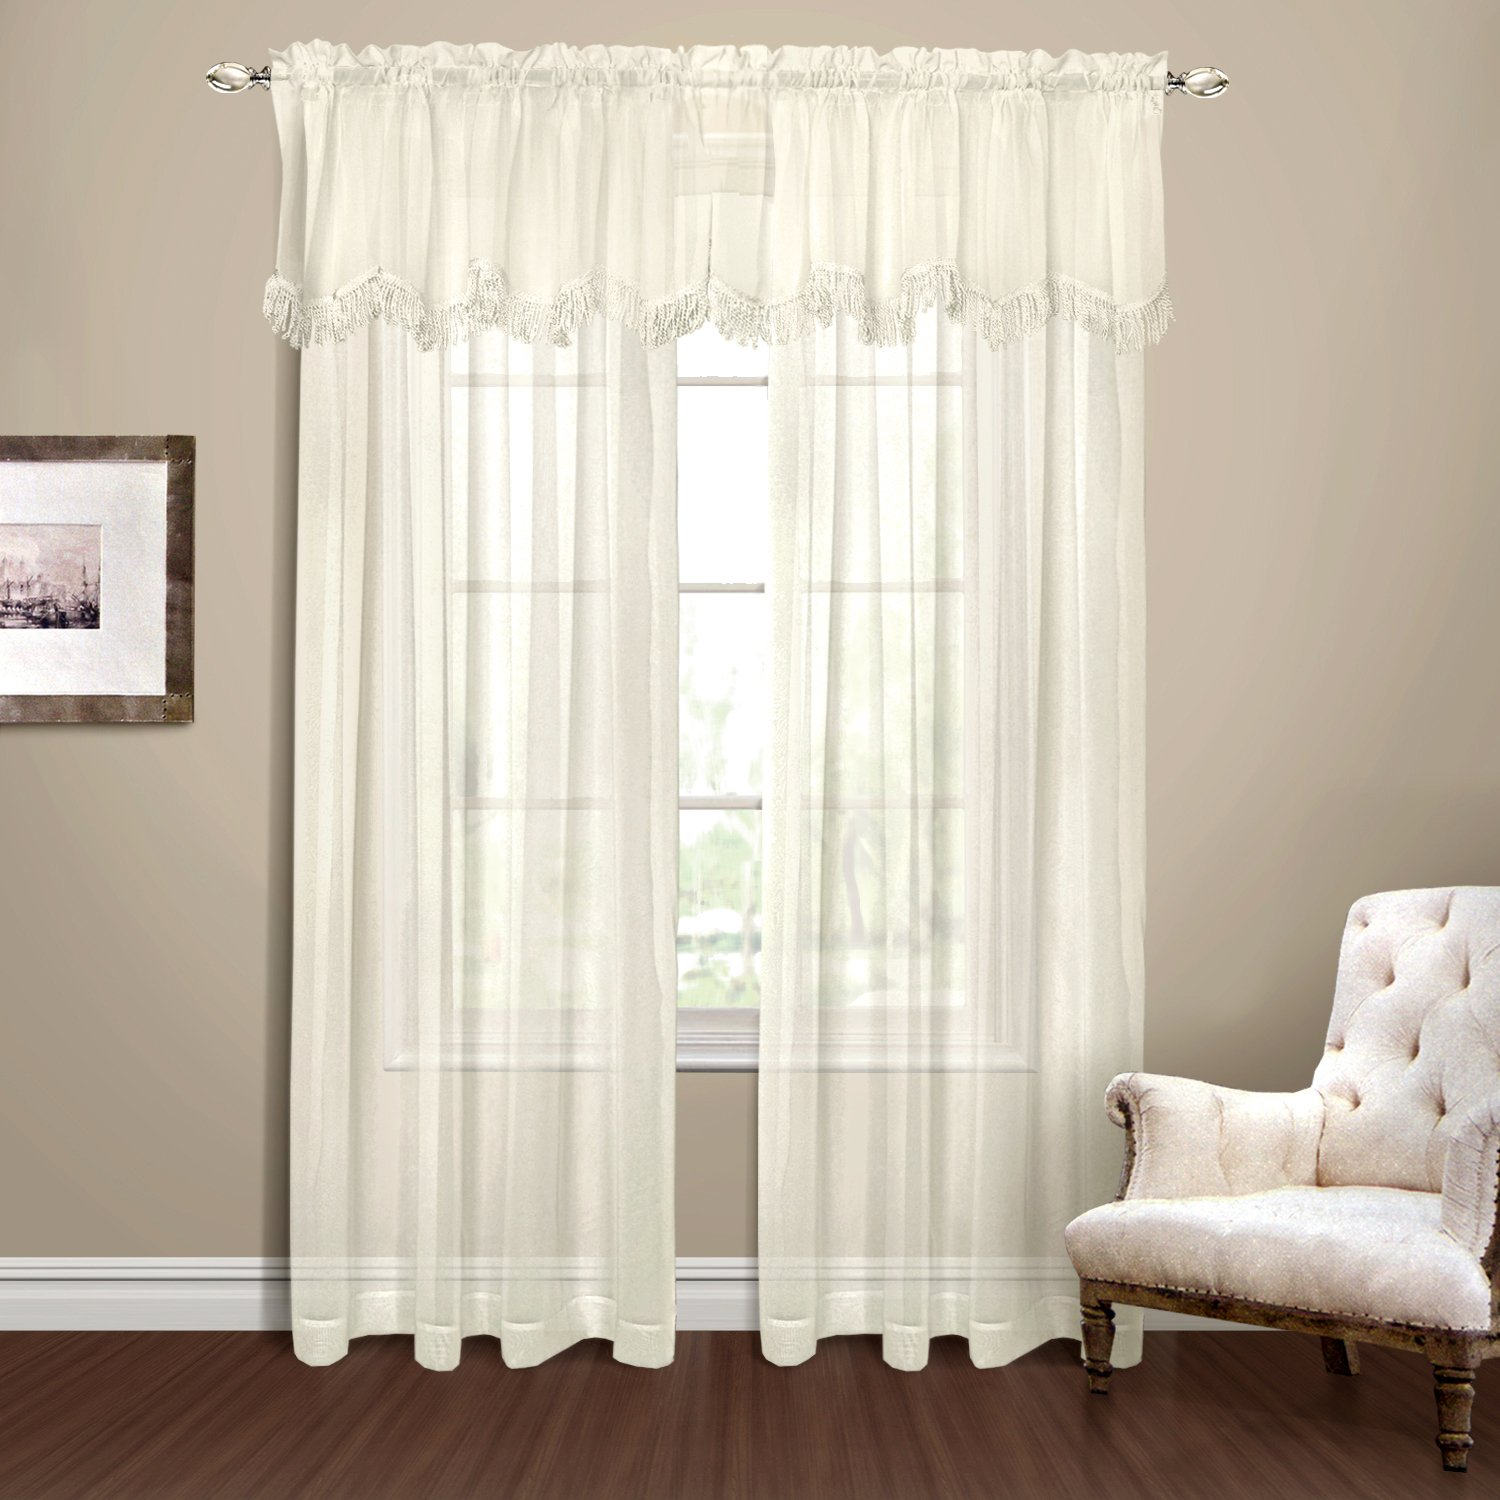 Ivory American Curtain /& Home 021371031141 American Curtain and Home Georgette Window Curtain 56-Inch by 84-Inch